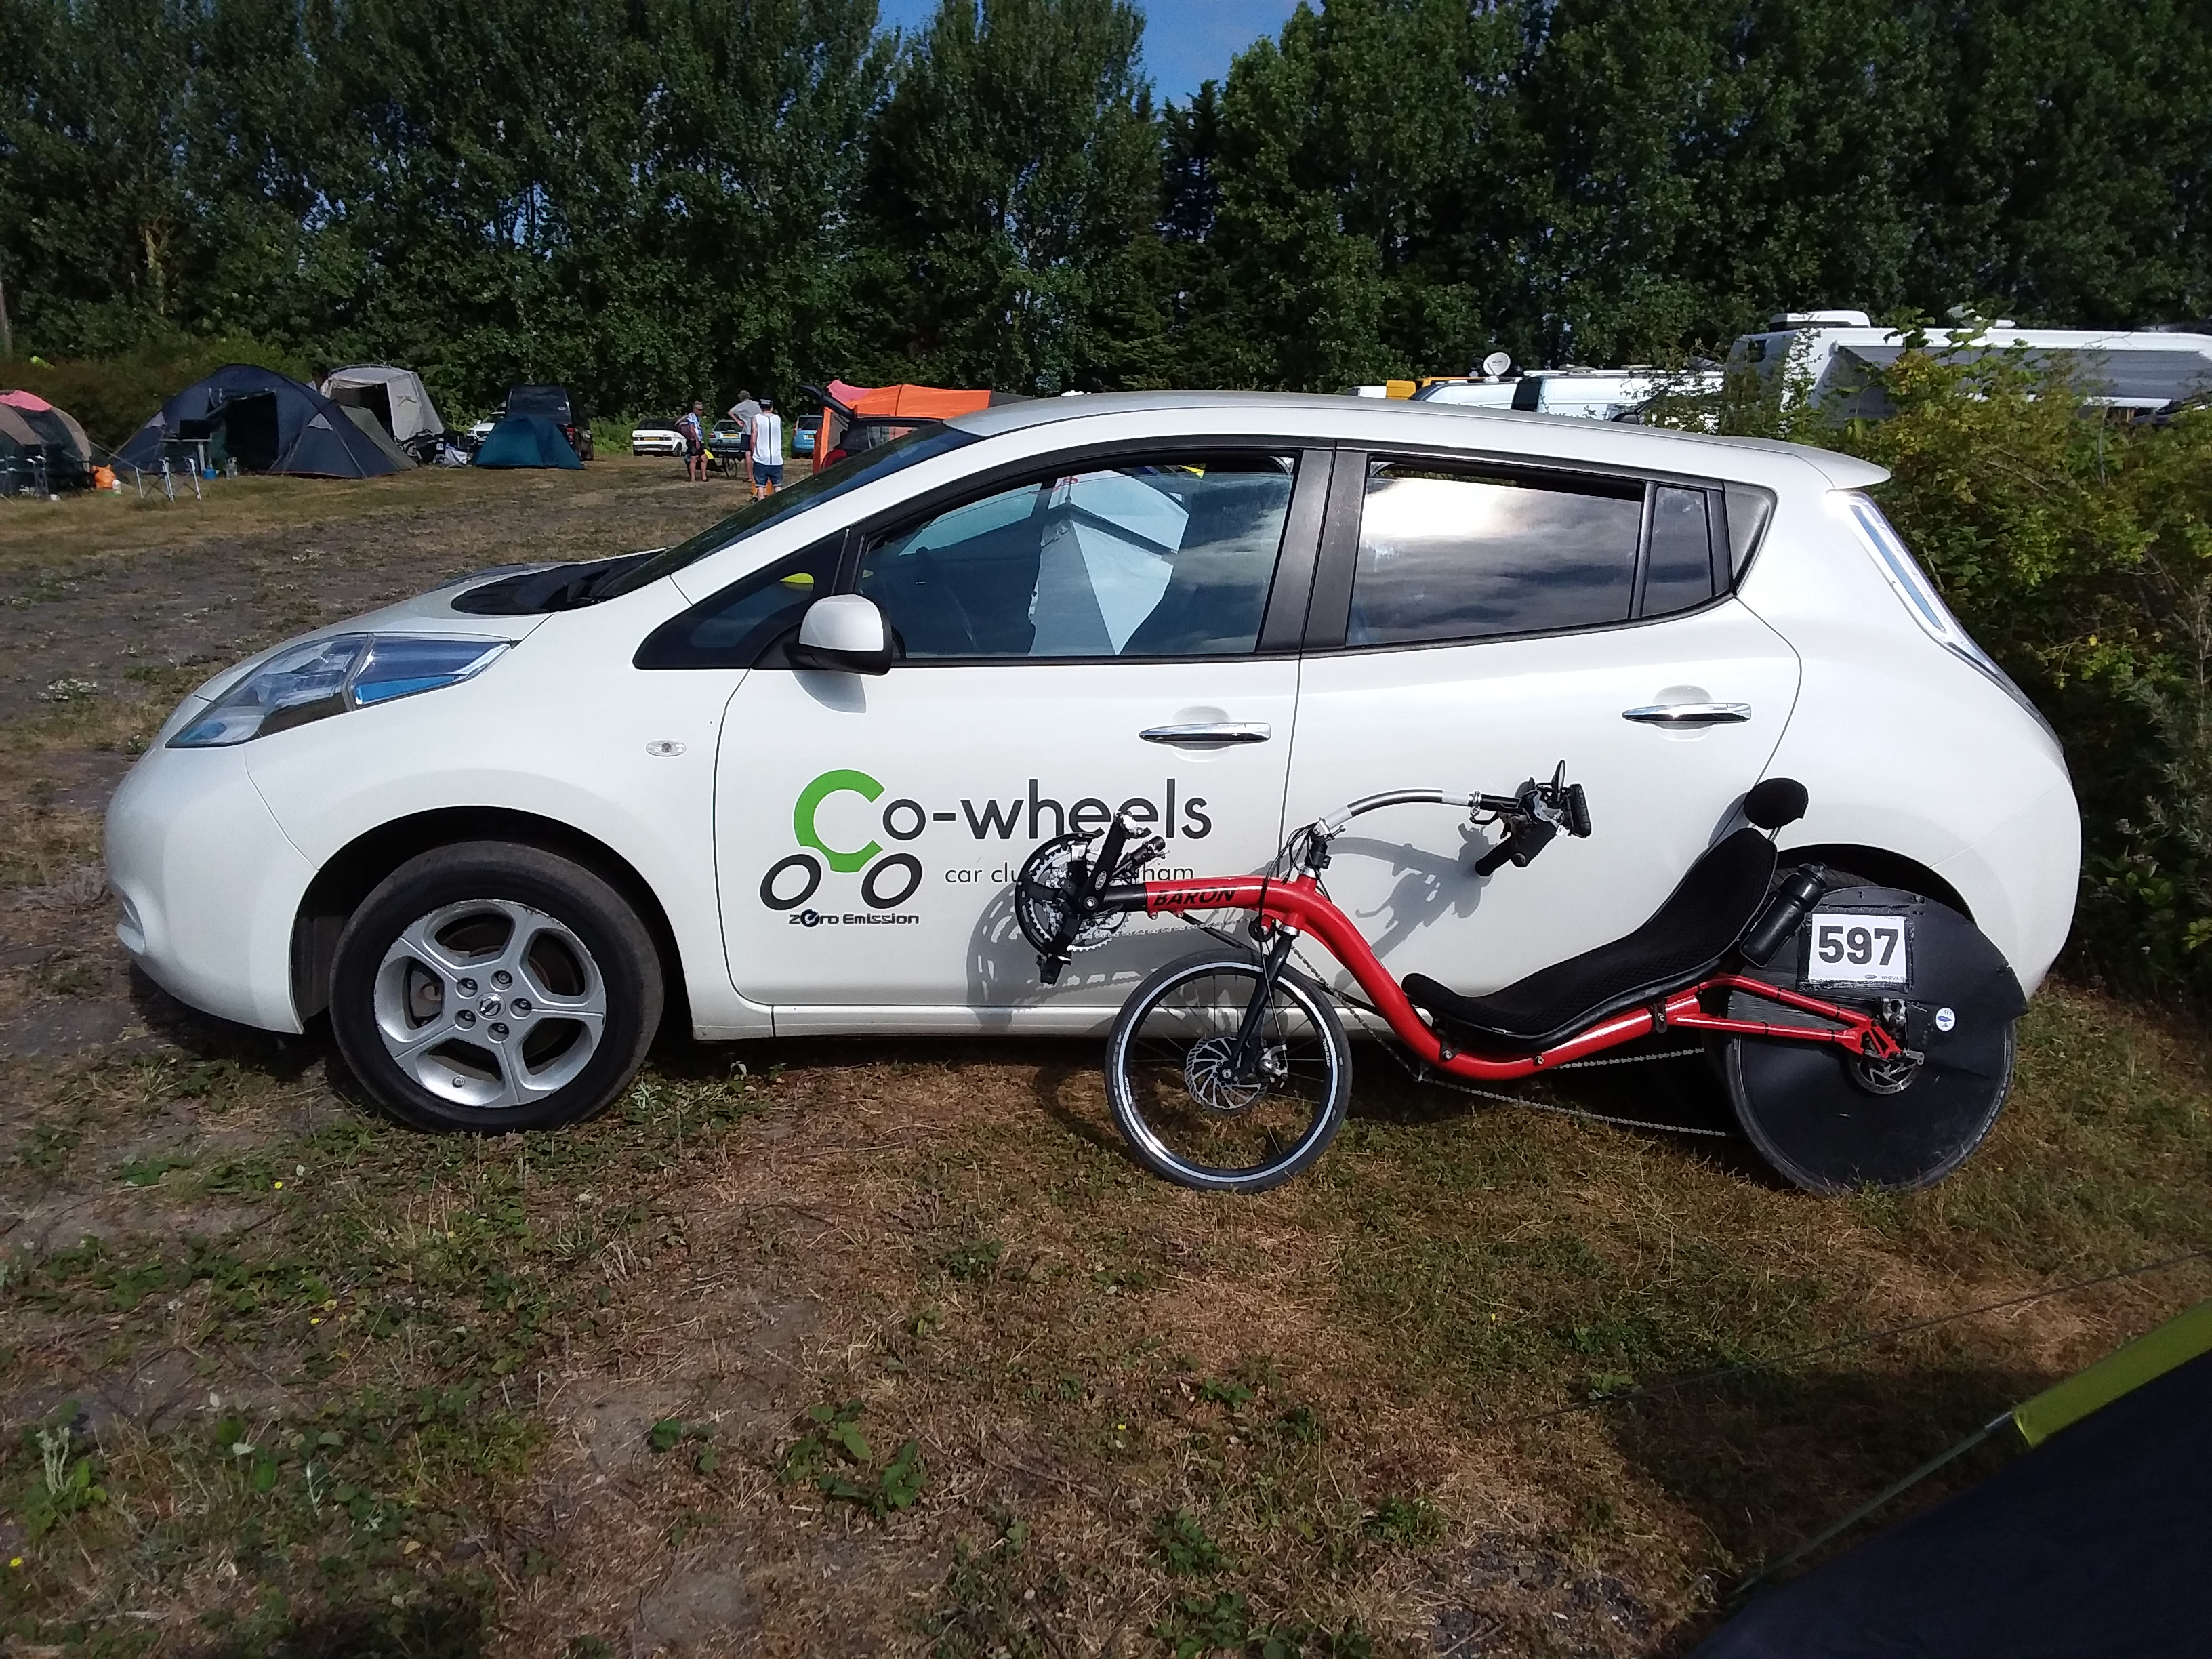 Optima Baron recumbent bicycle with race number 597 leaning against a white Nissan Leaf with a Co-Wheels Birmingham logo on the door panel